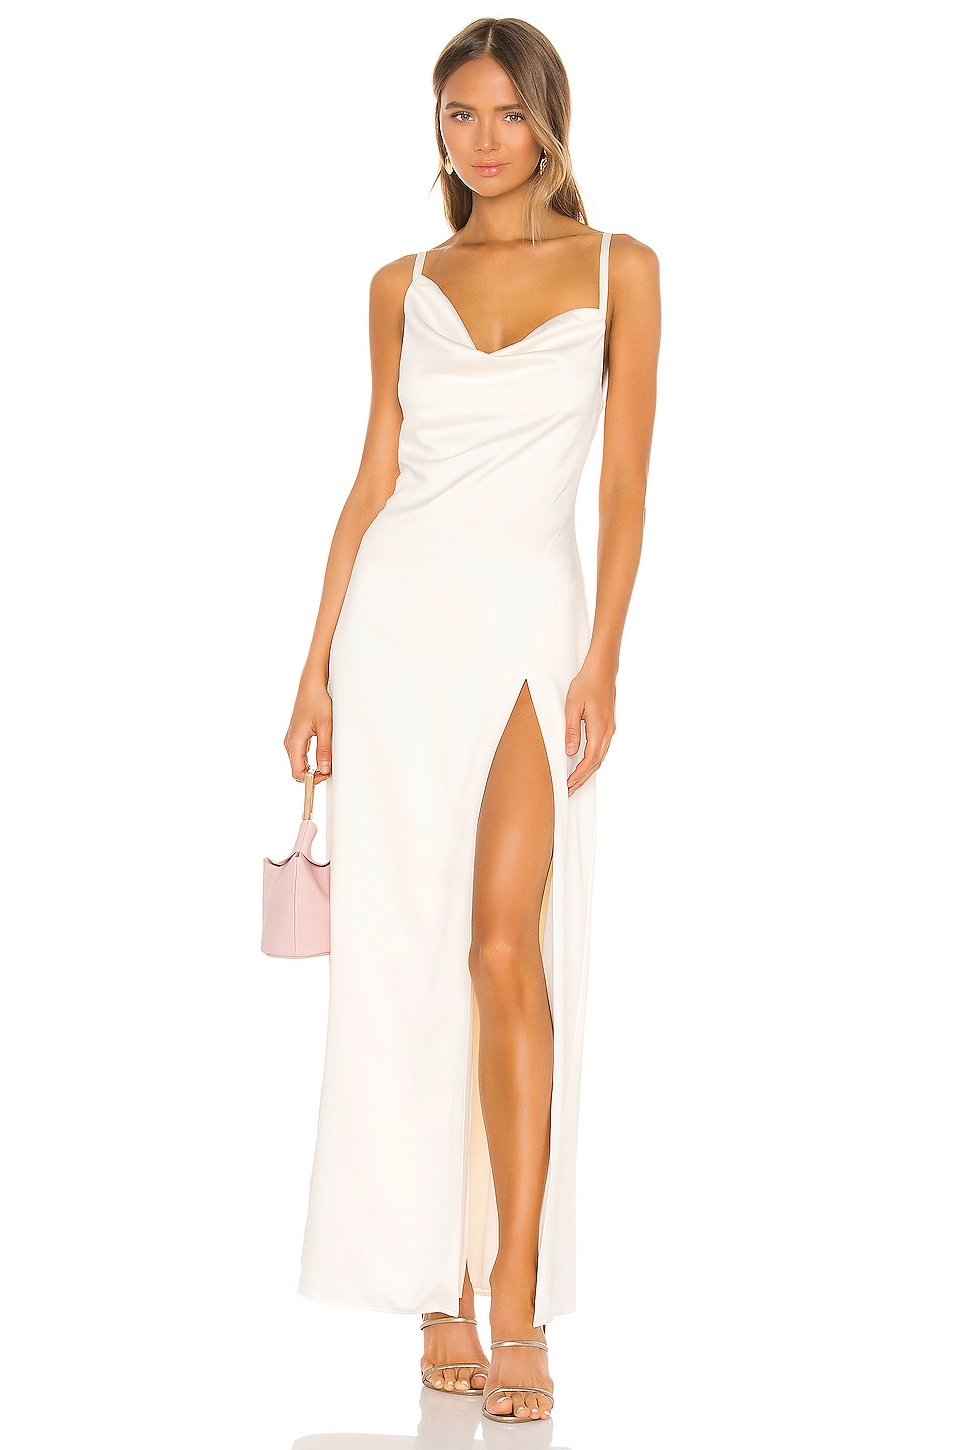 Camila Coelho Reyna Maxi Dress In Pearl White Revolve Find long maxi dresses perfect for going out, weddings, and parties. usd